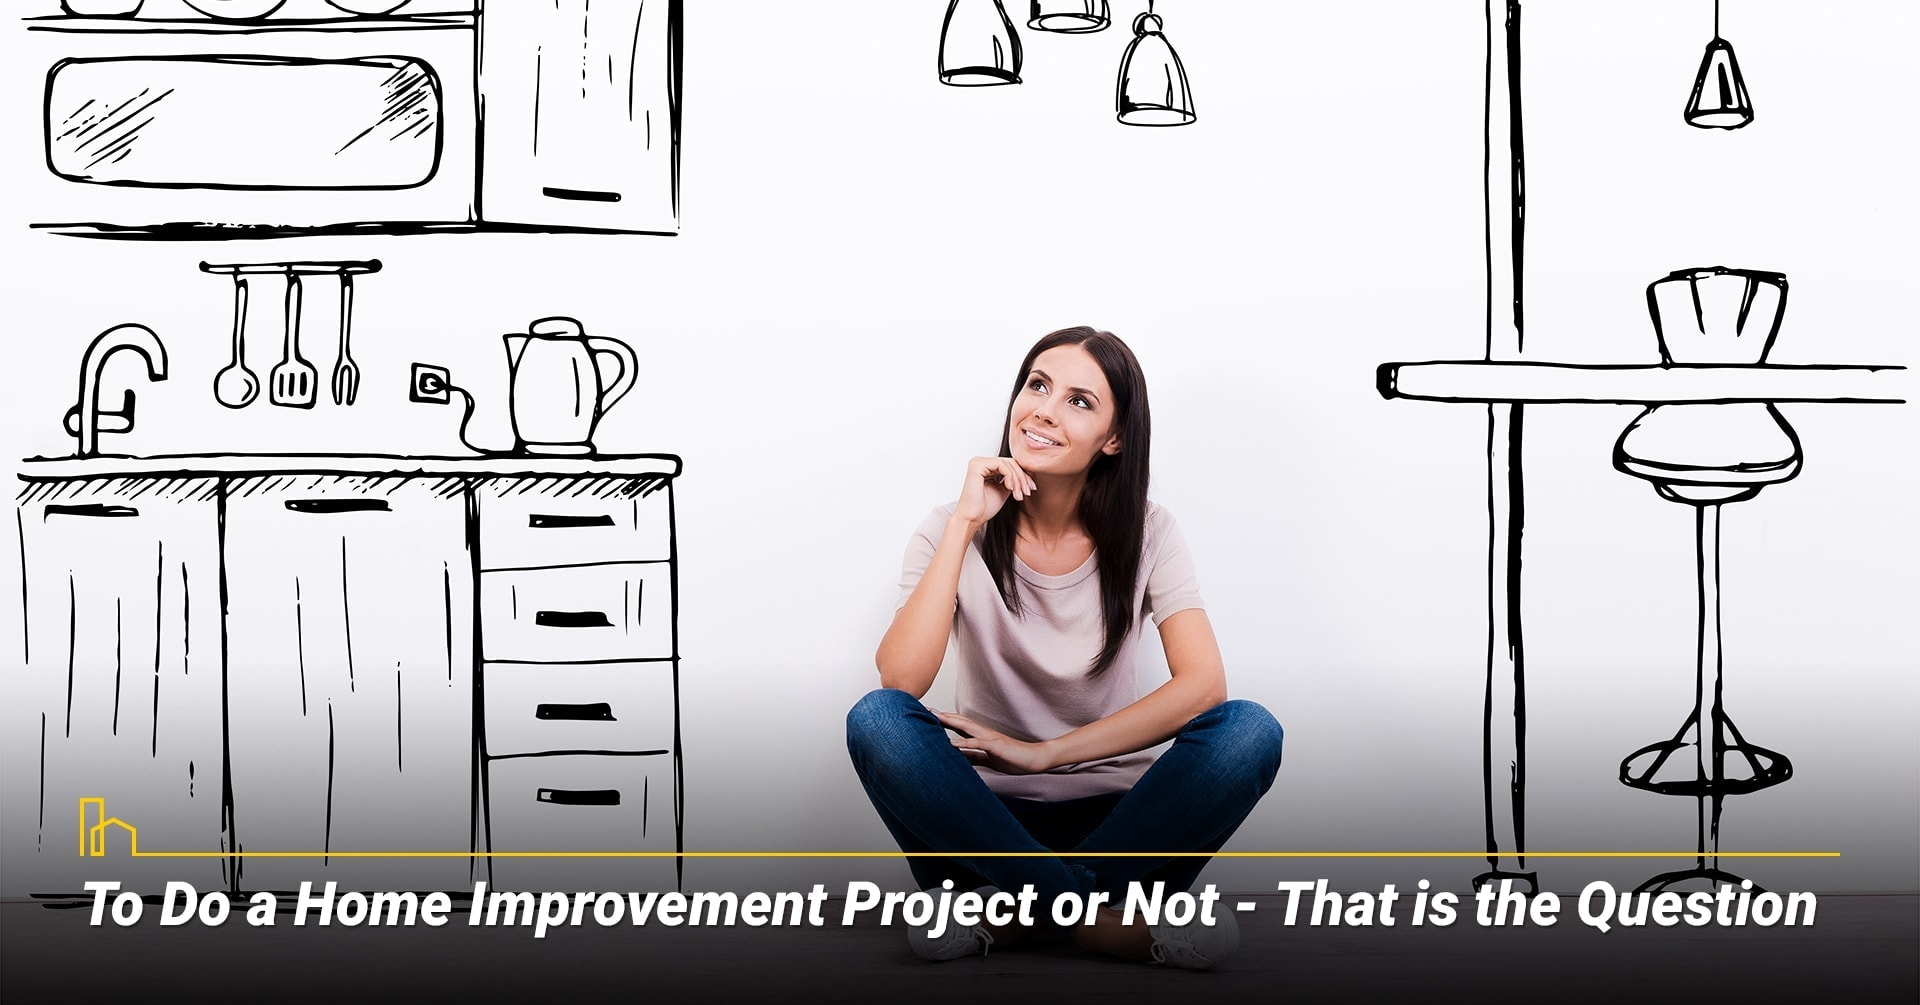 To Do a Home Improvement Project or Not - That is the Question, reasons to do a home improvement projects